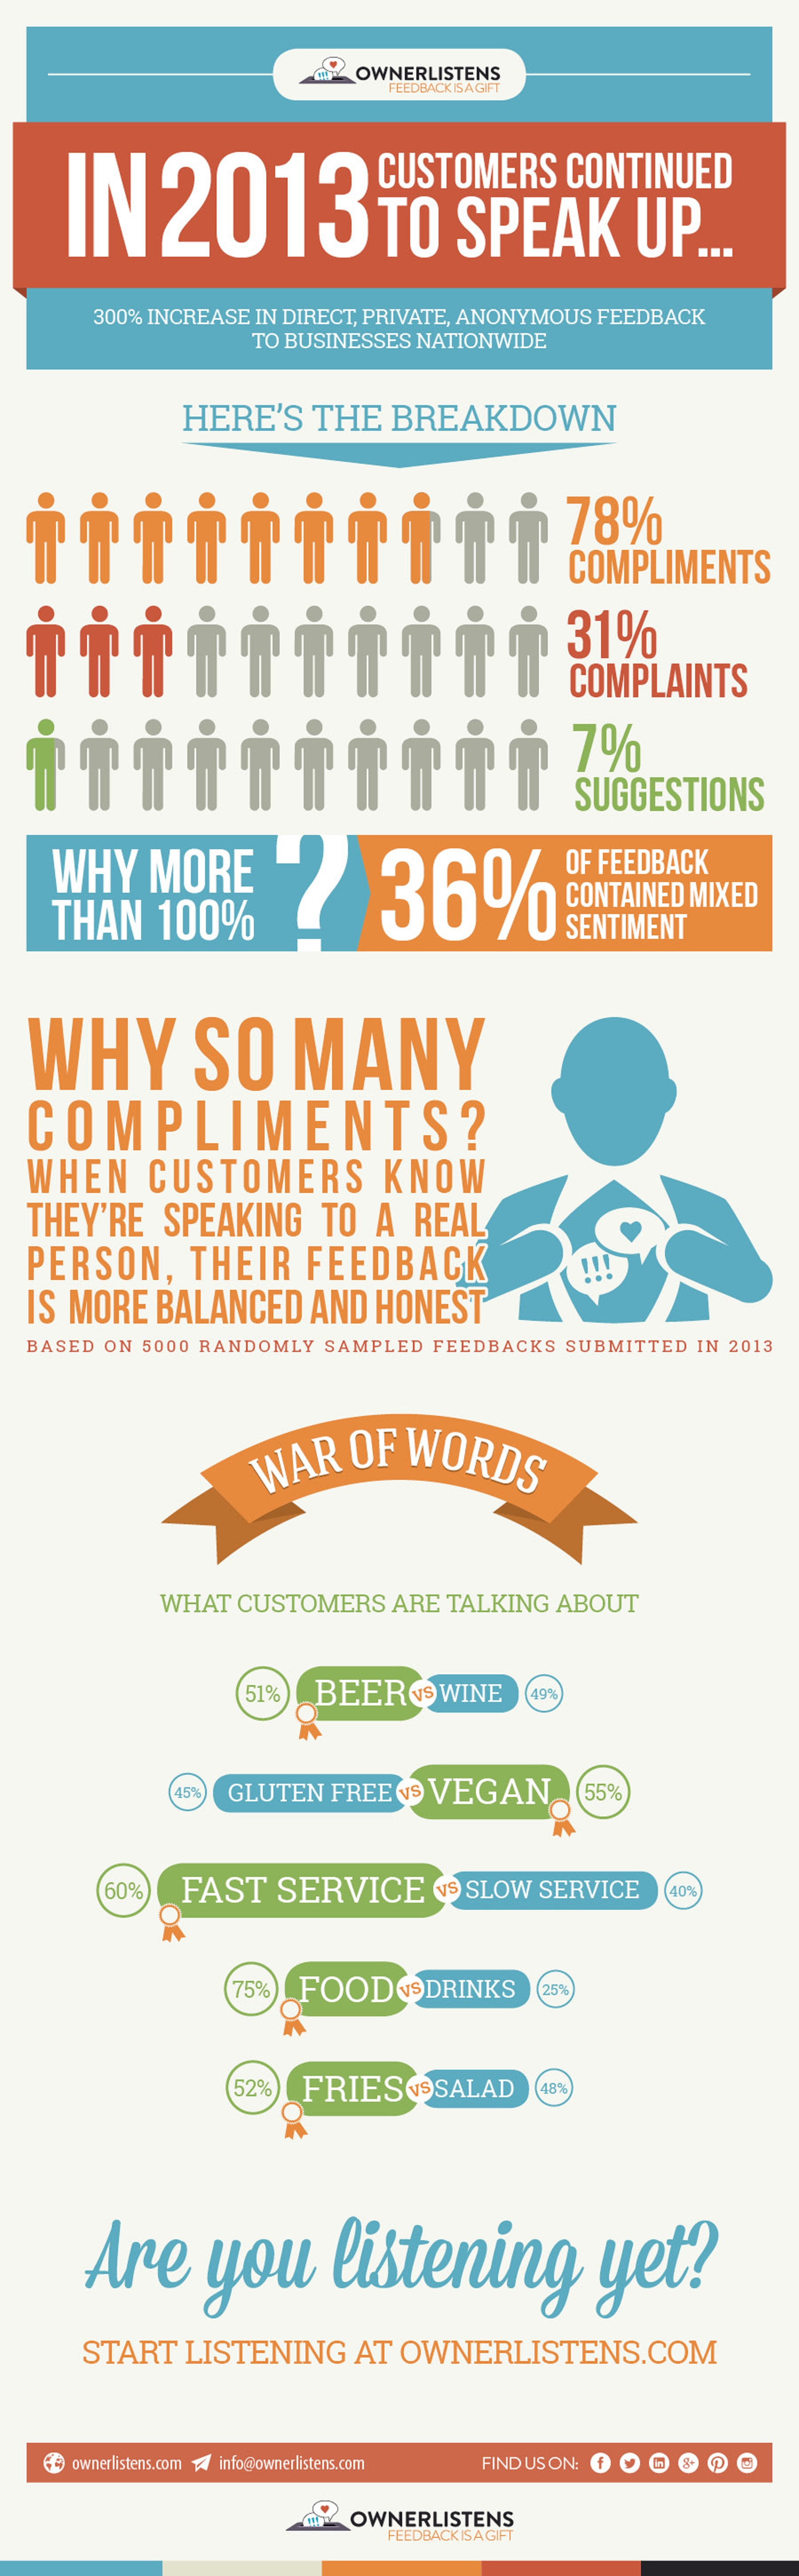 In 2013 Customers Continued to Speak Up